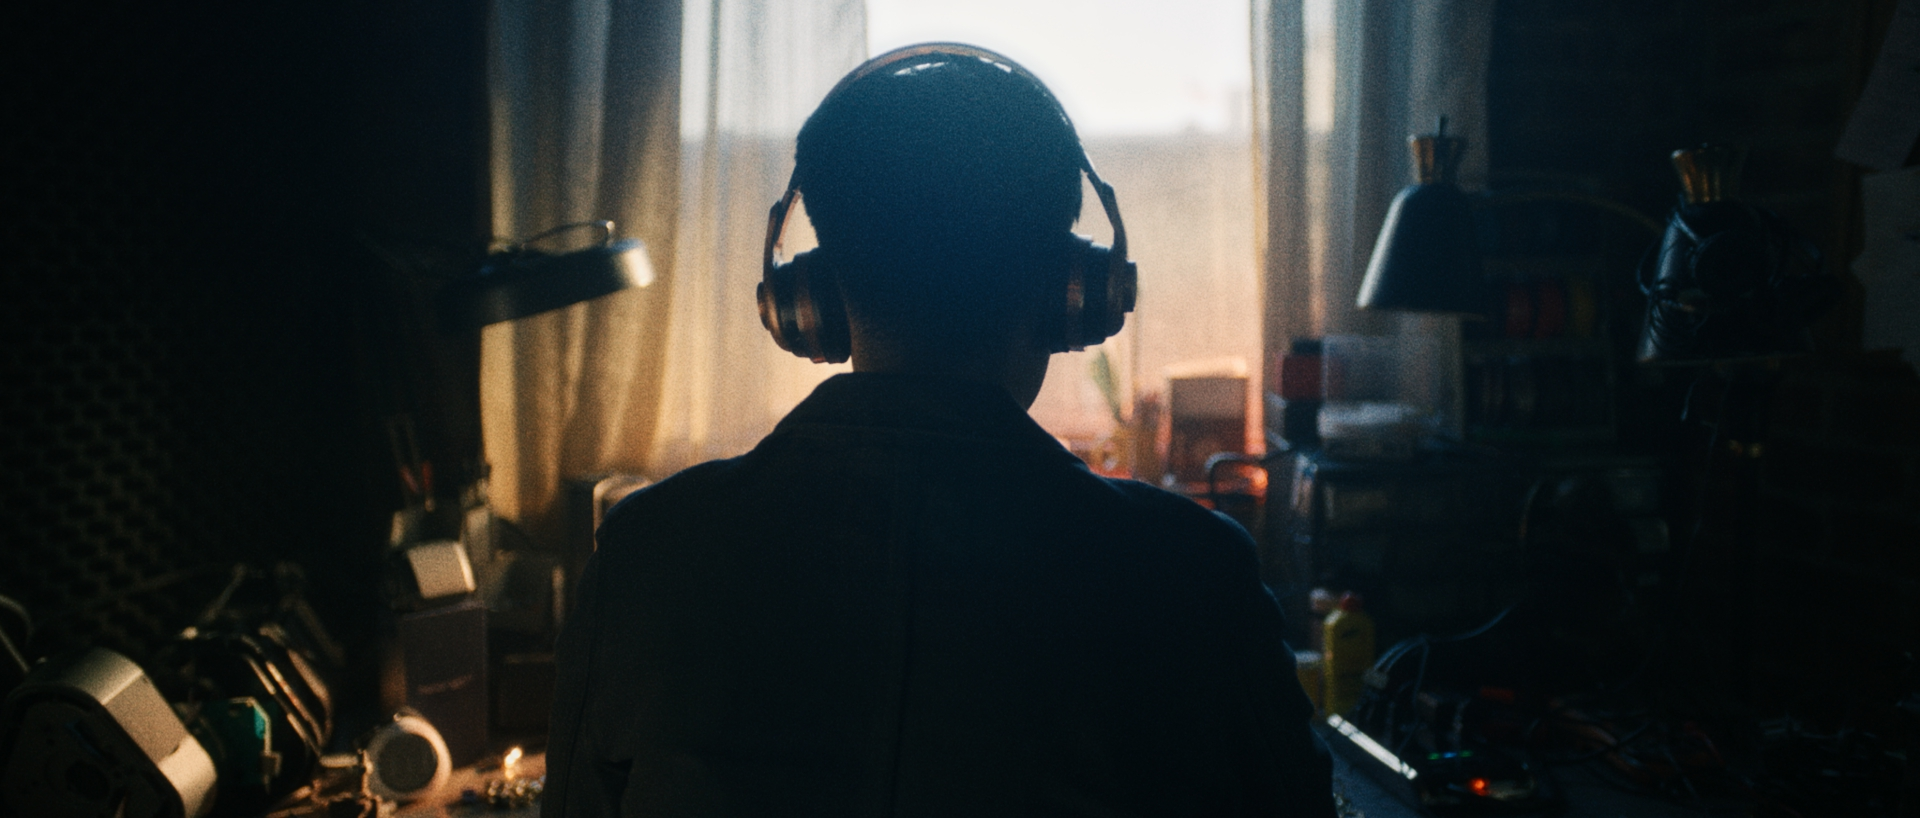 MONSTER_HEADPHONES_1.30.1.jpg